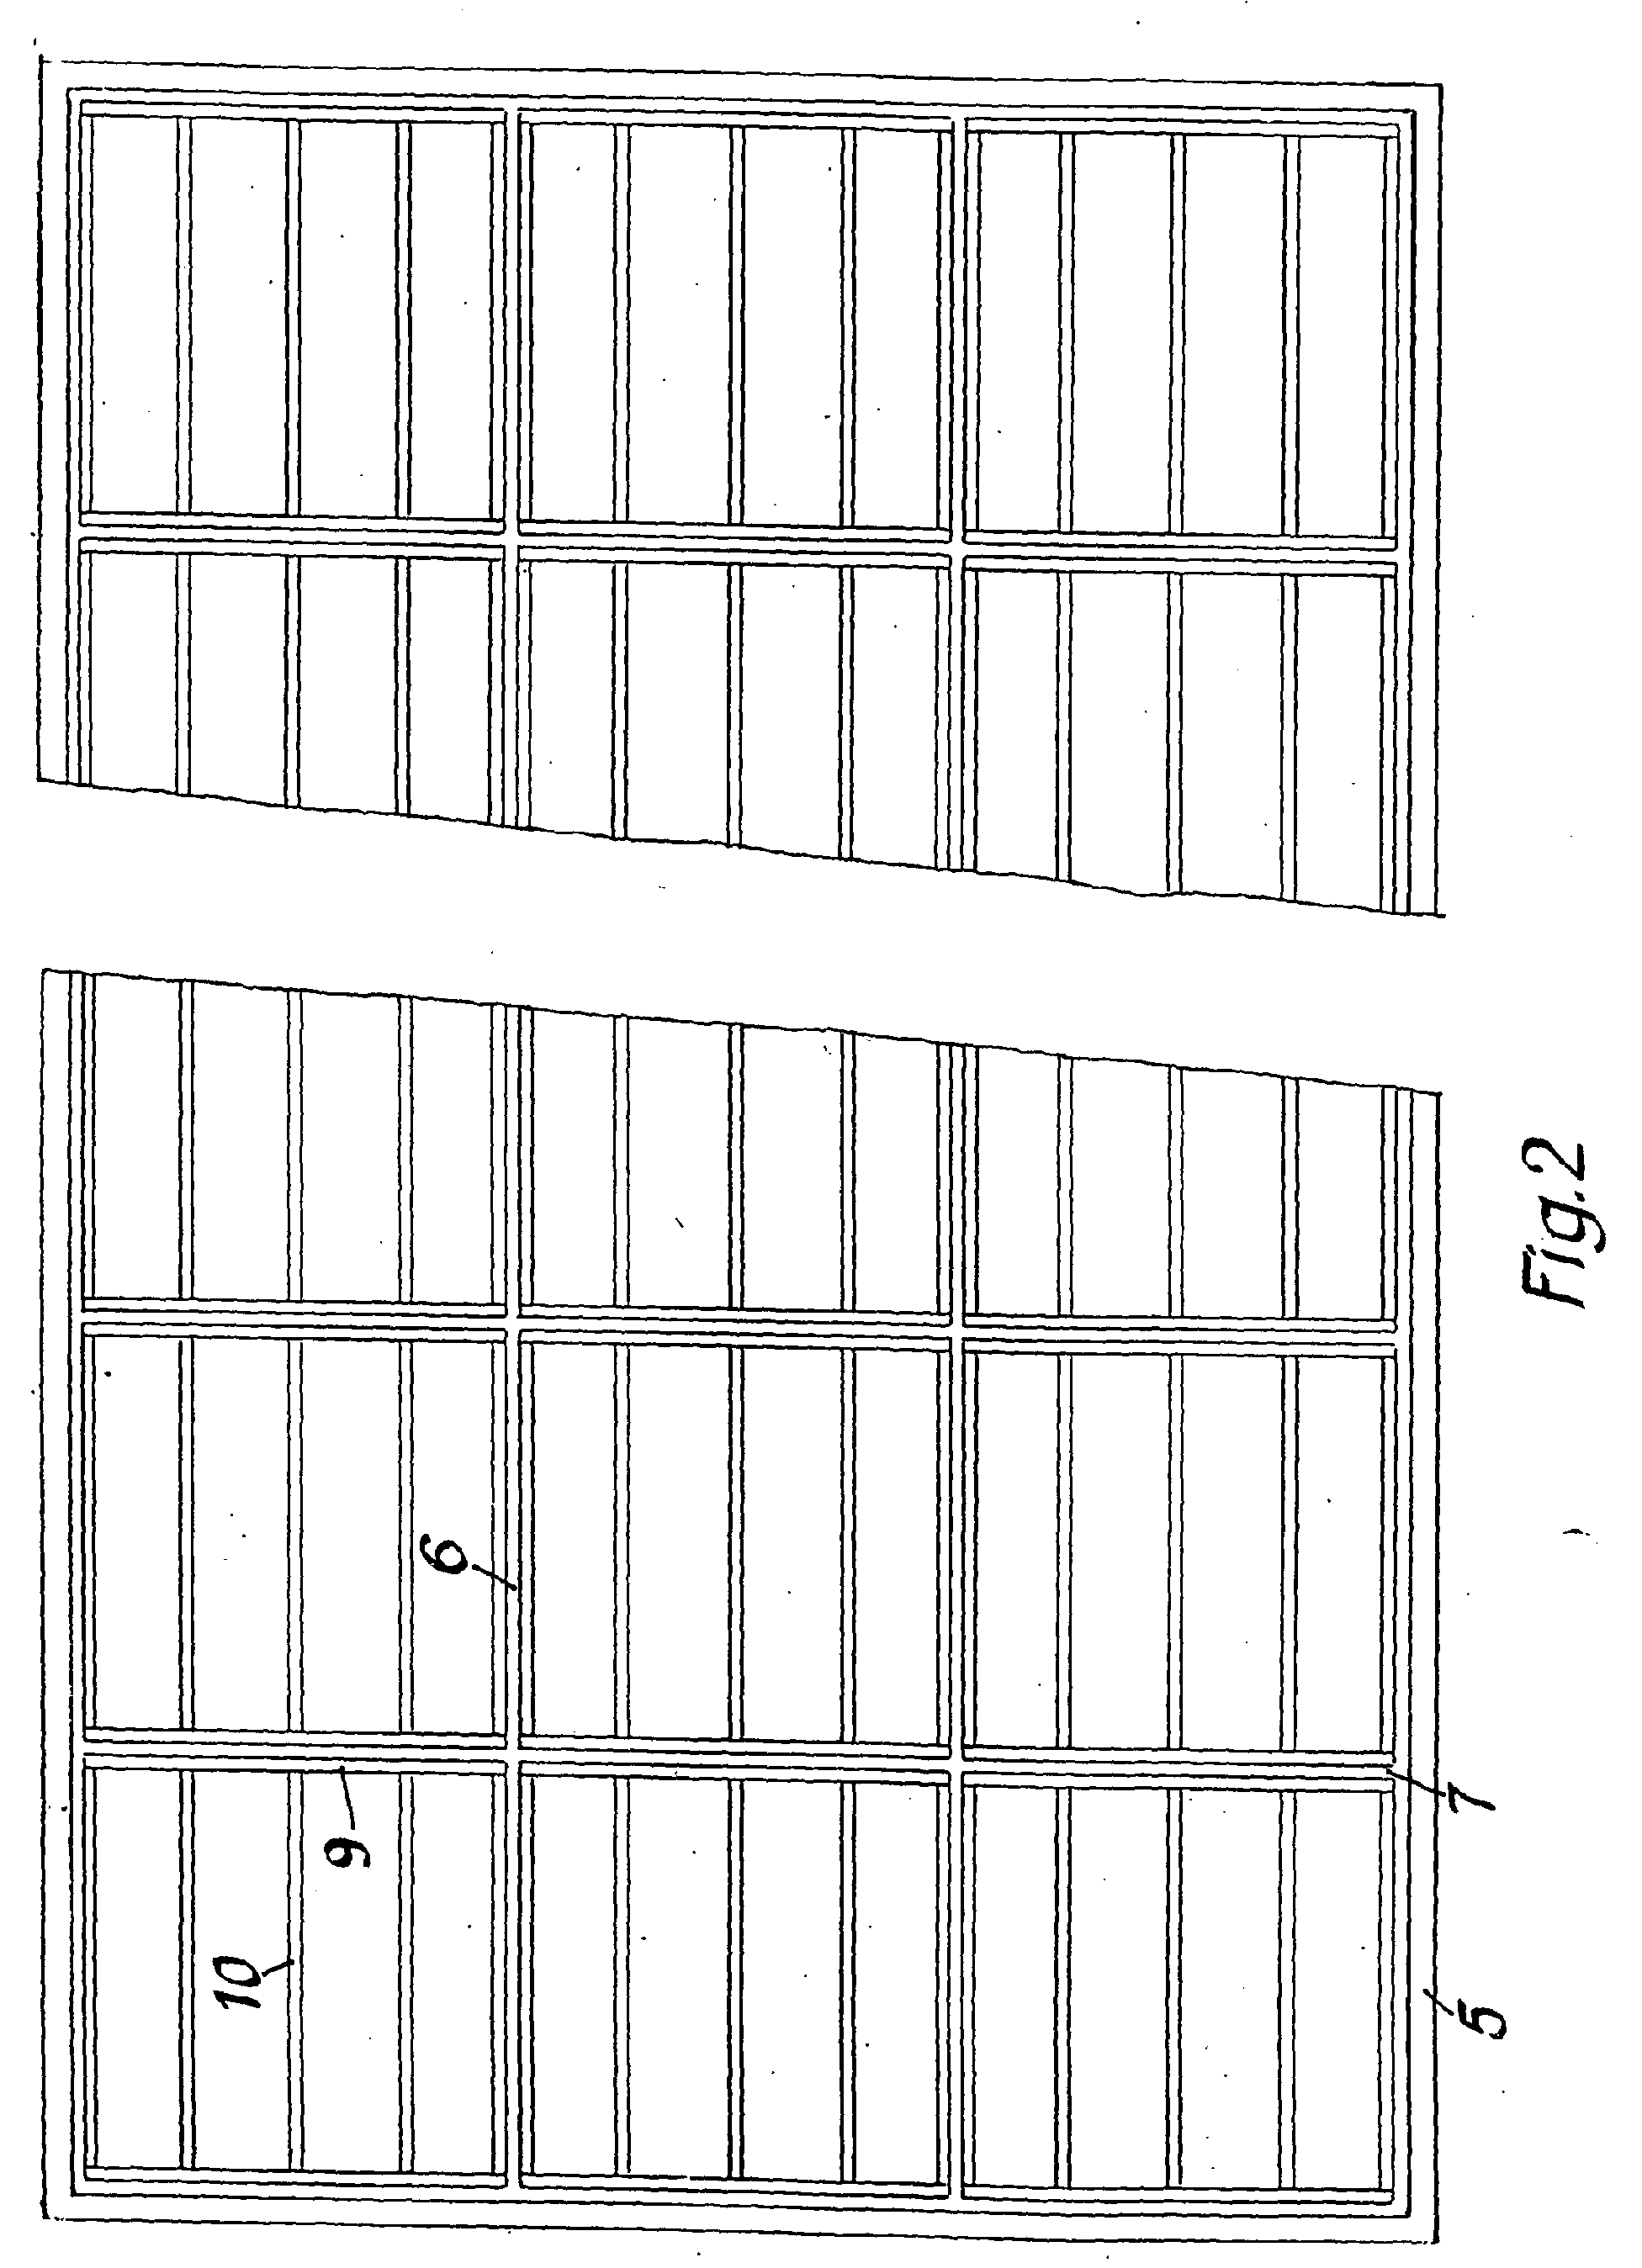 Holzskelettbauweise grundriss  Patent EP1486624A2 - Holzhaus in Holzrahmen- oder ...